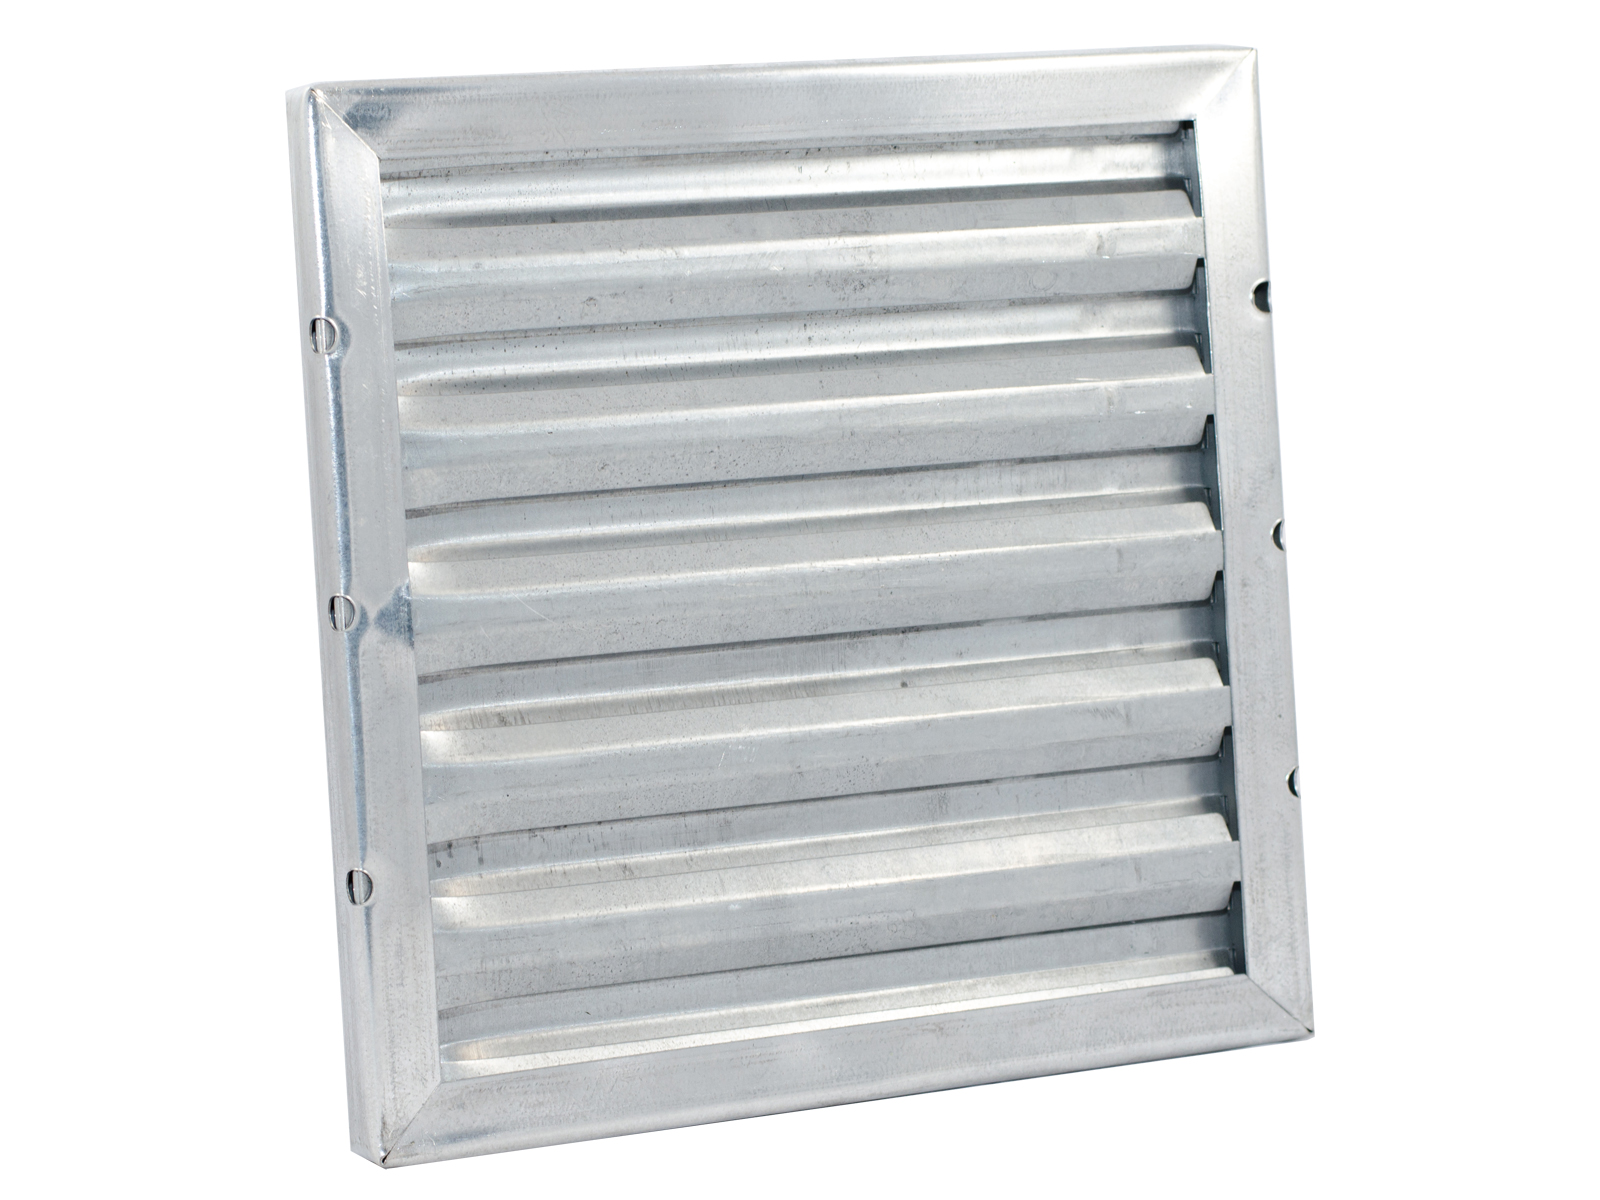 Type 2 Exhaust Hoods ~ Grease filters exhaust hood guide according to nafa